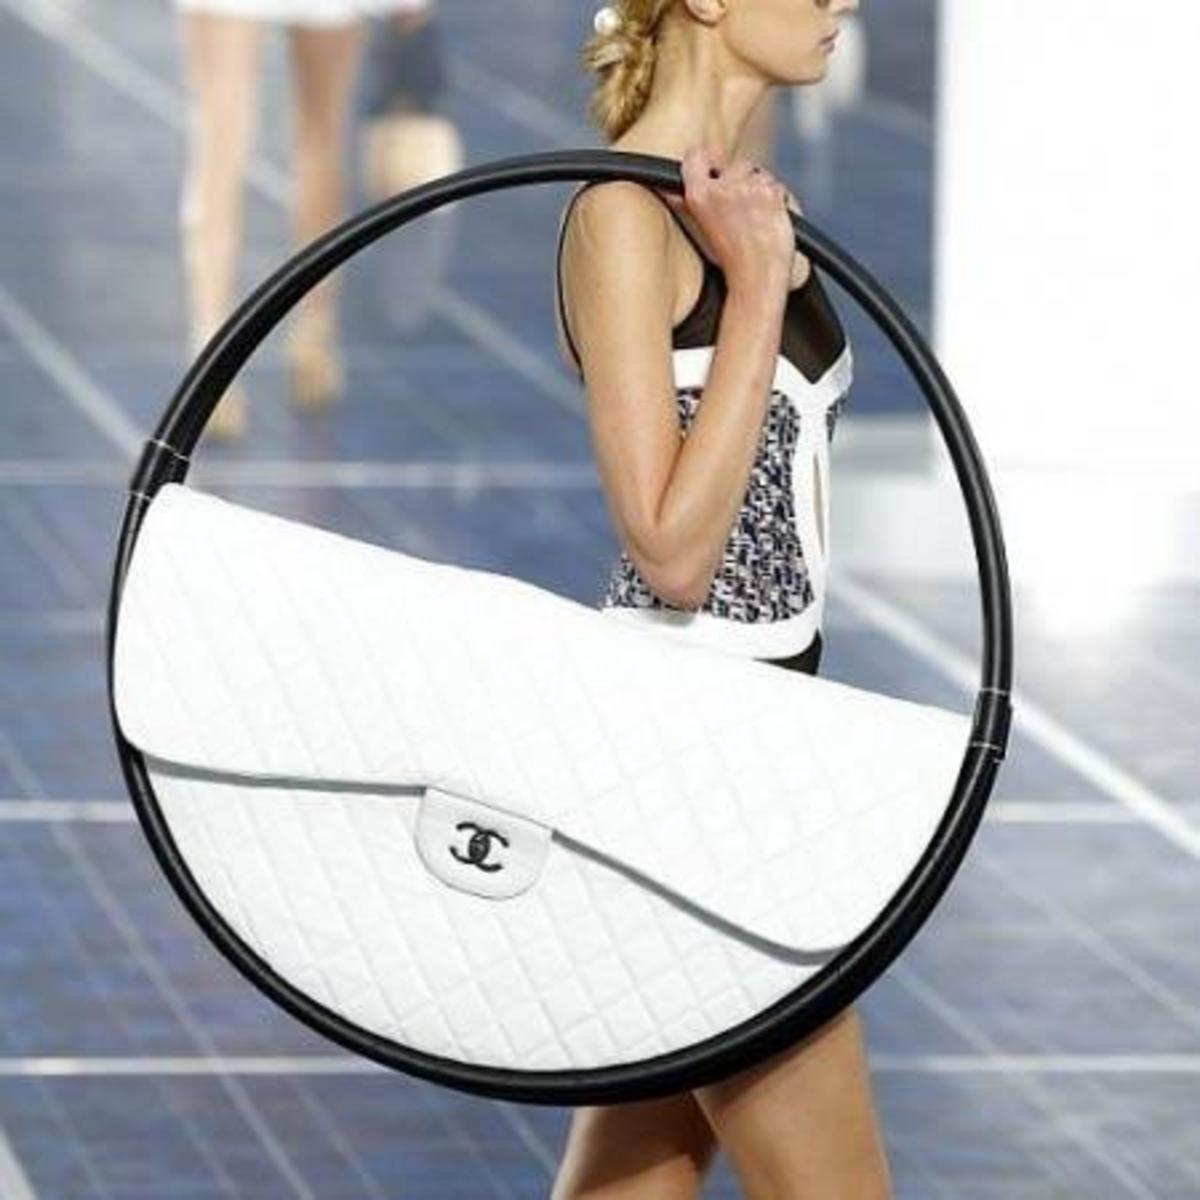 Now this handbag is that crazy that it made the shoe list. Its just too much.